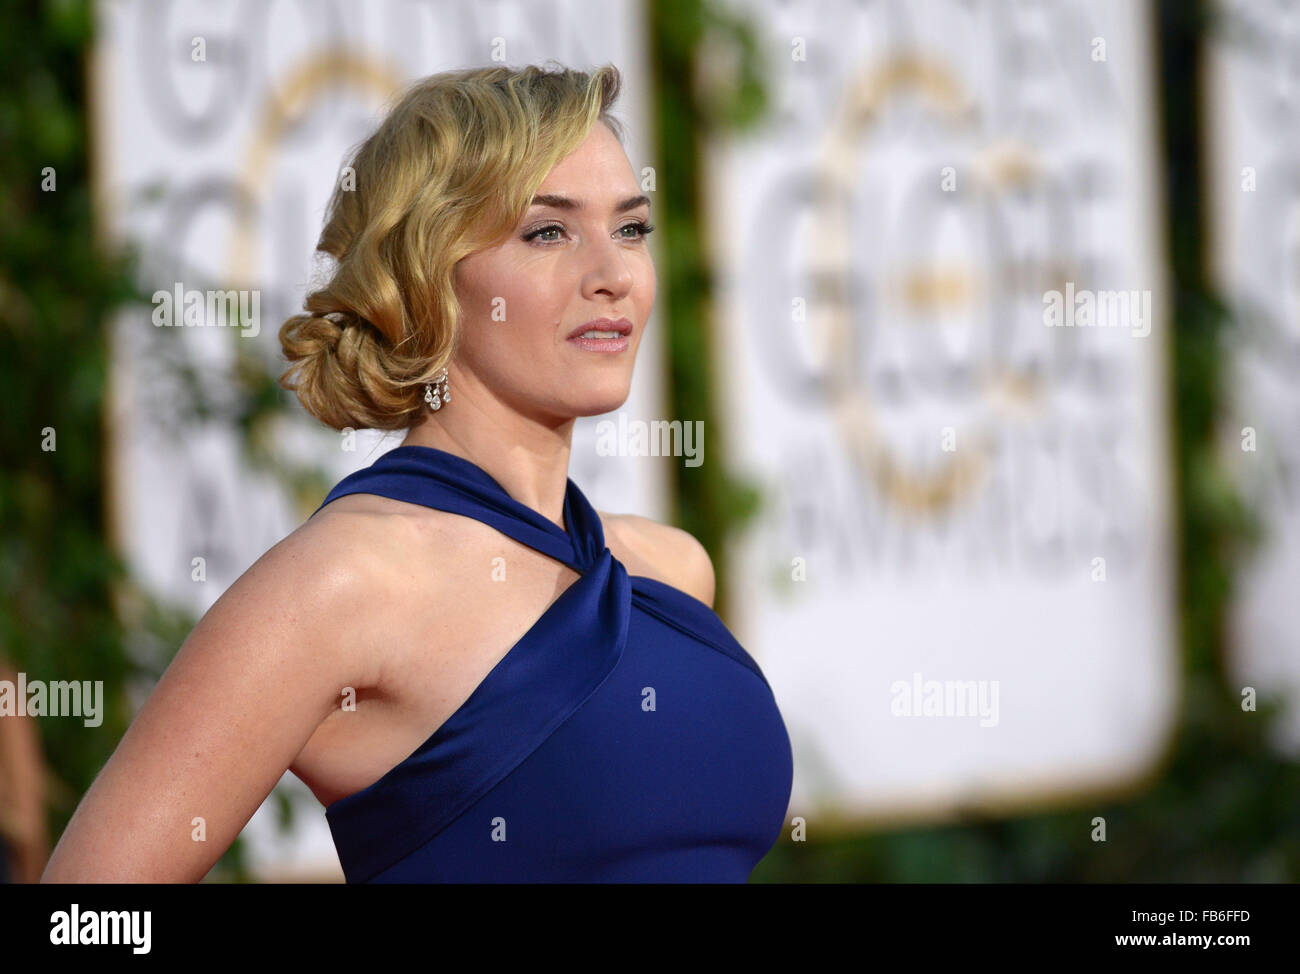 Los Angeles, Kalifornien, USA. 10. Januar 2016. Kate Winslet kommt bei den Golden Globes, Los Angeles, CA-Credit: Stockbild